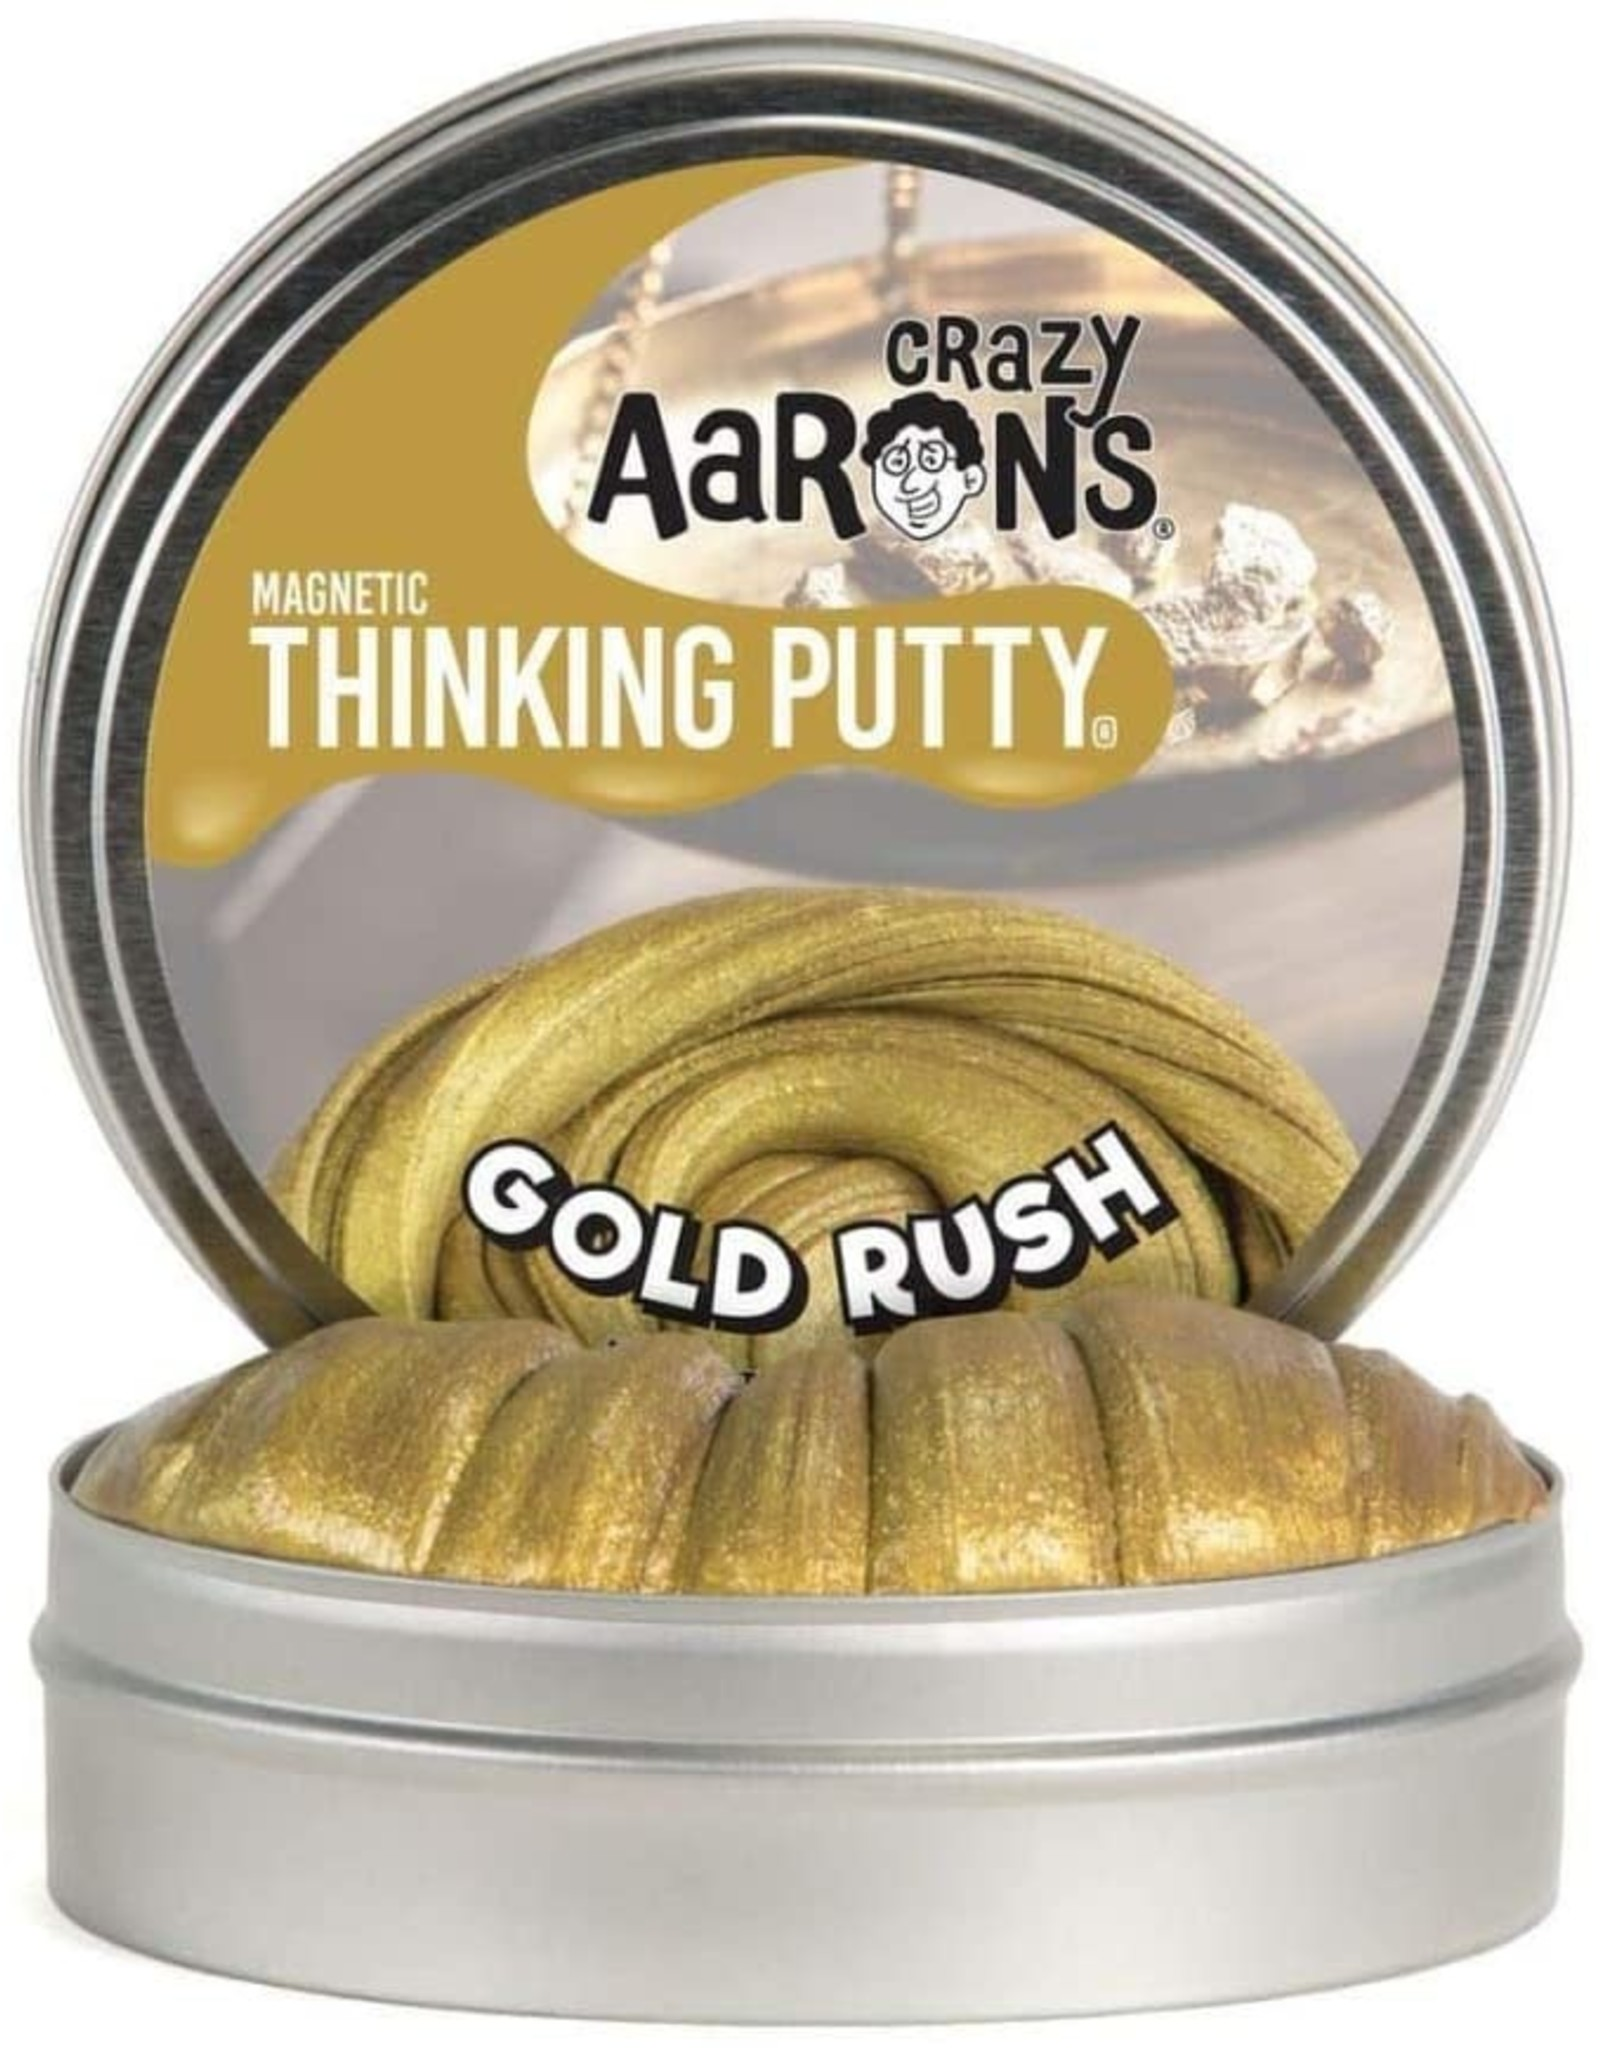 Crazy Aarons Gold Rush Thinking Putty